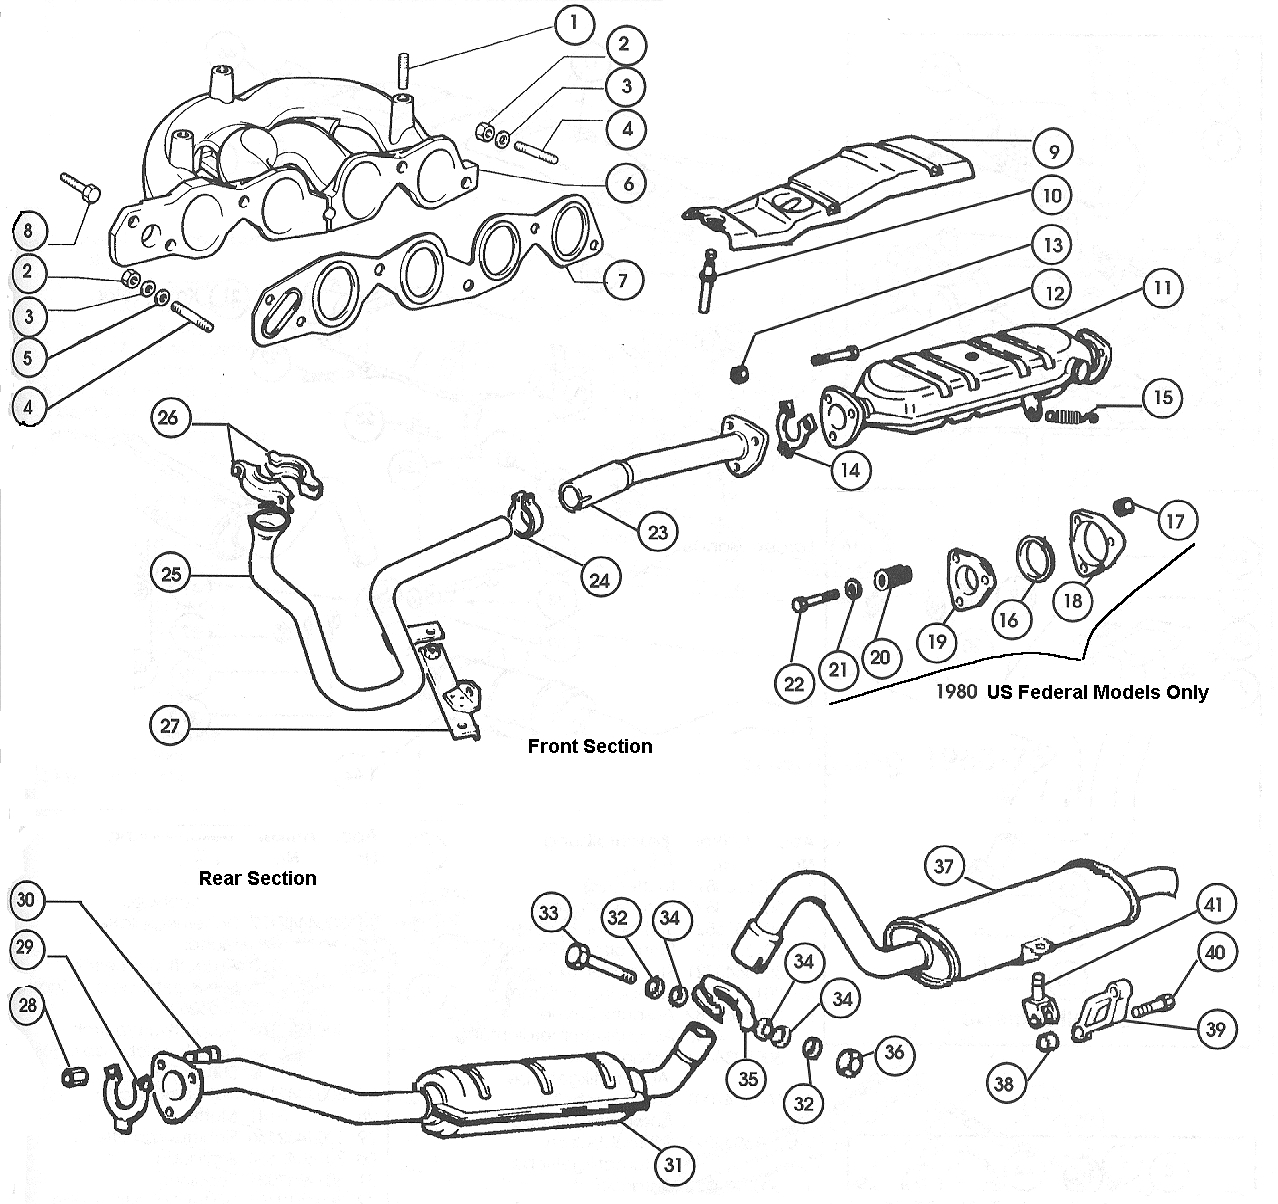 Exhaust System – Carburettor Models 1979-80